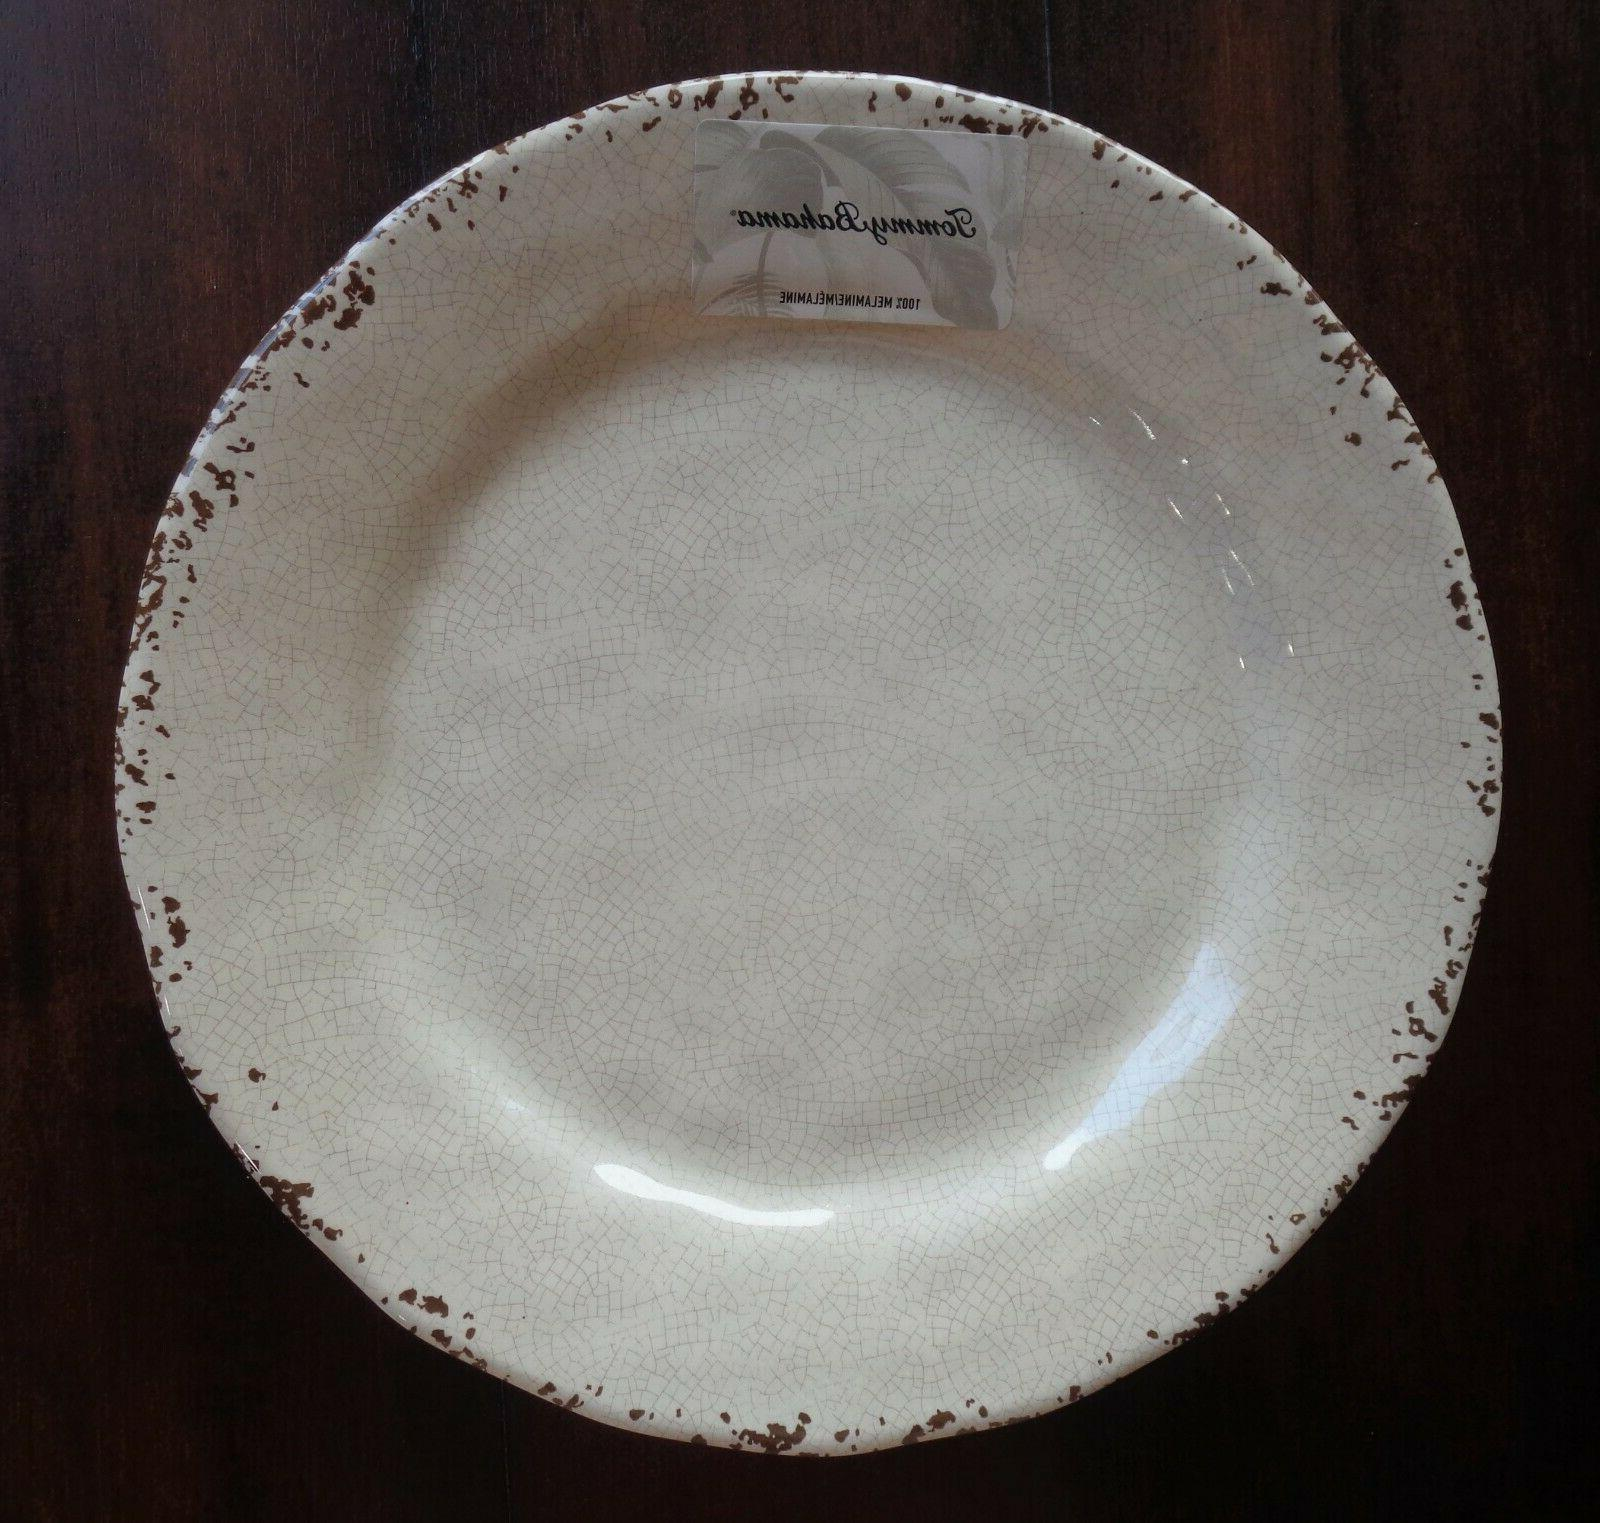 SET of Tommy Bahama Plates Cracked